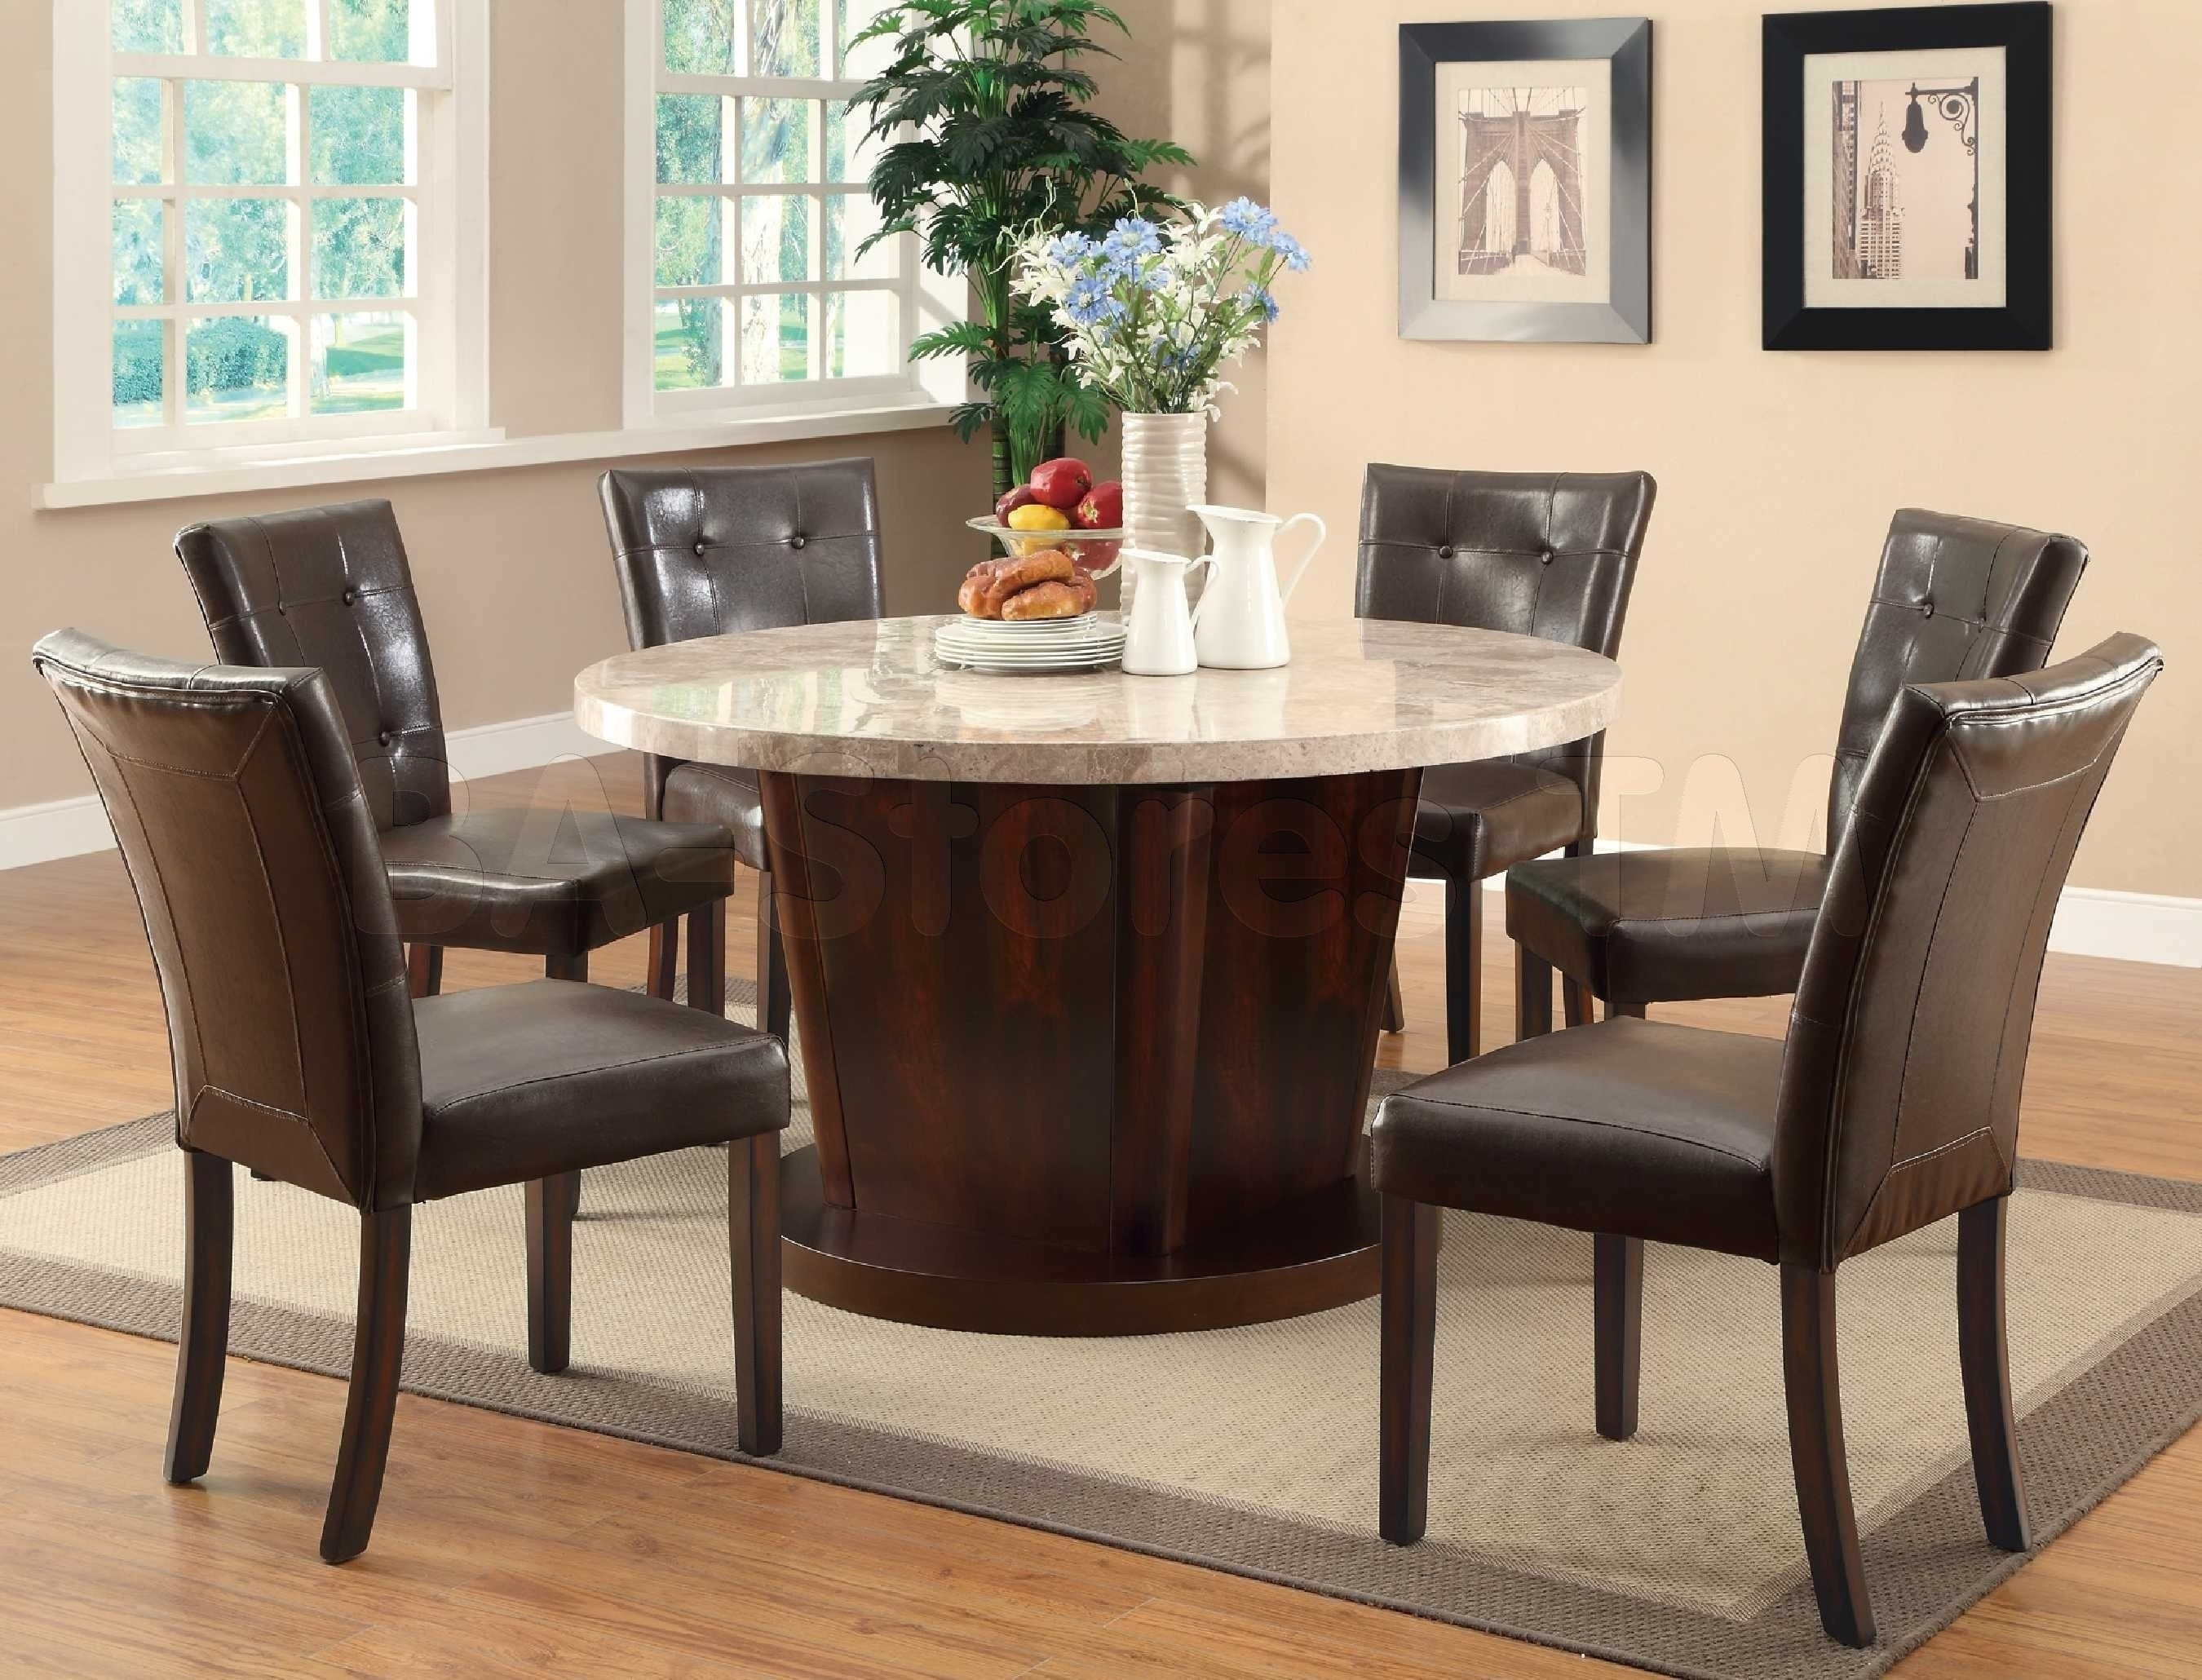 10 Seater Dining Table And Chairs Elegant Modern Dining Room Tables With Most Current 10 Seater Dining Tables And Chairs (Gallery 2 of 25)